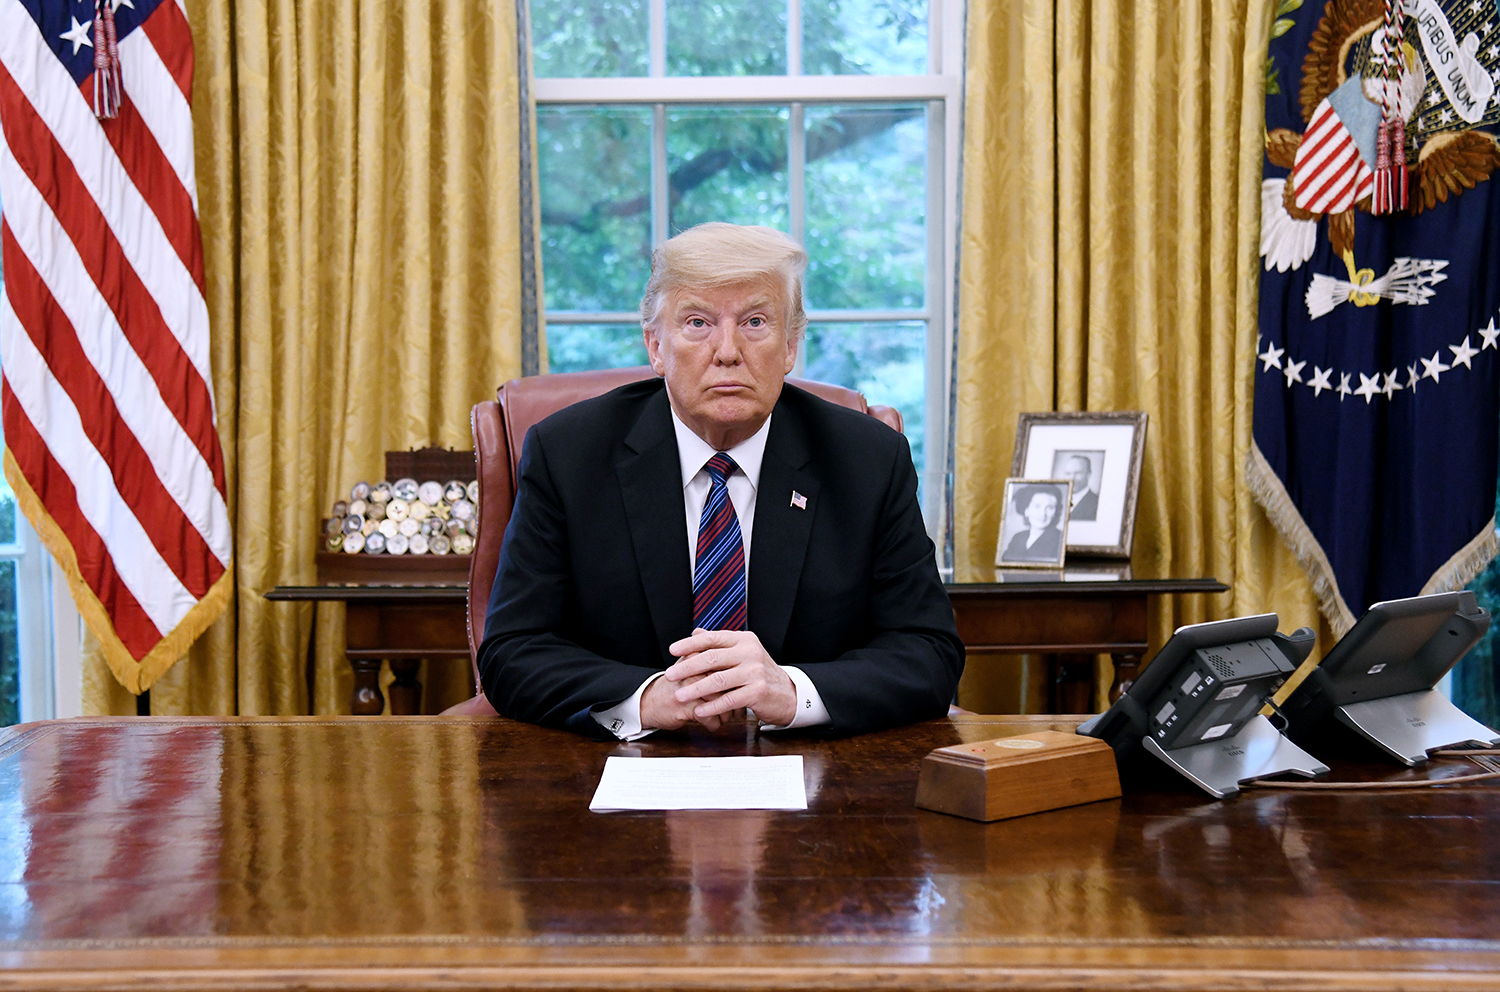 U.S. President Donald Trump listens to Mexican President Enrique Pena Nieto during a phone conversation on Monday, Aug. 27, 2018 to announce the United States-Mexico Trade Agreement in the Oval Office of the White House in Washington, D.C.